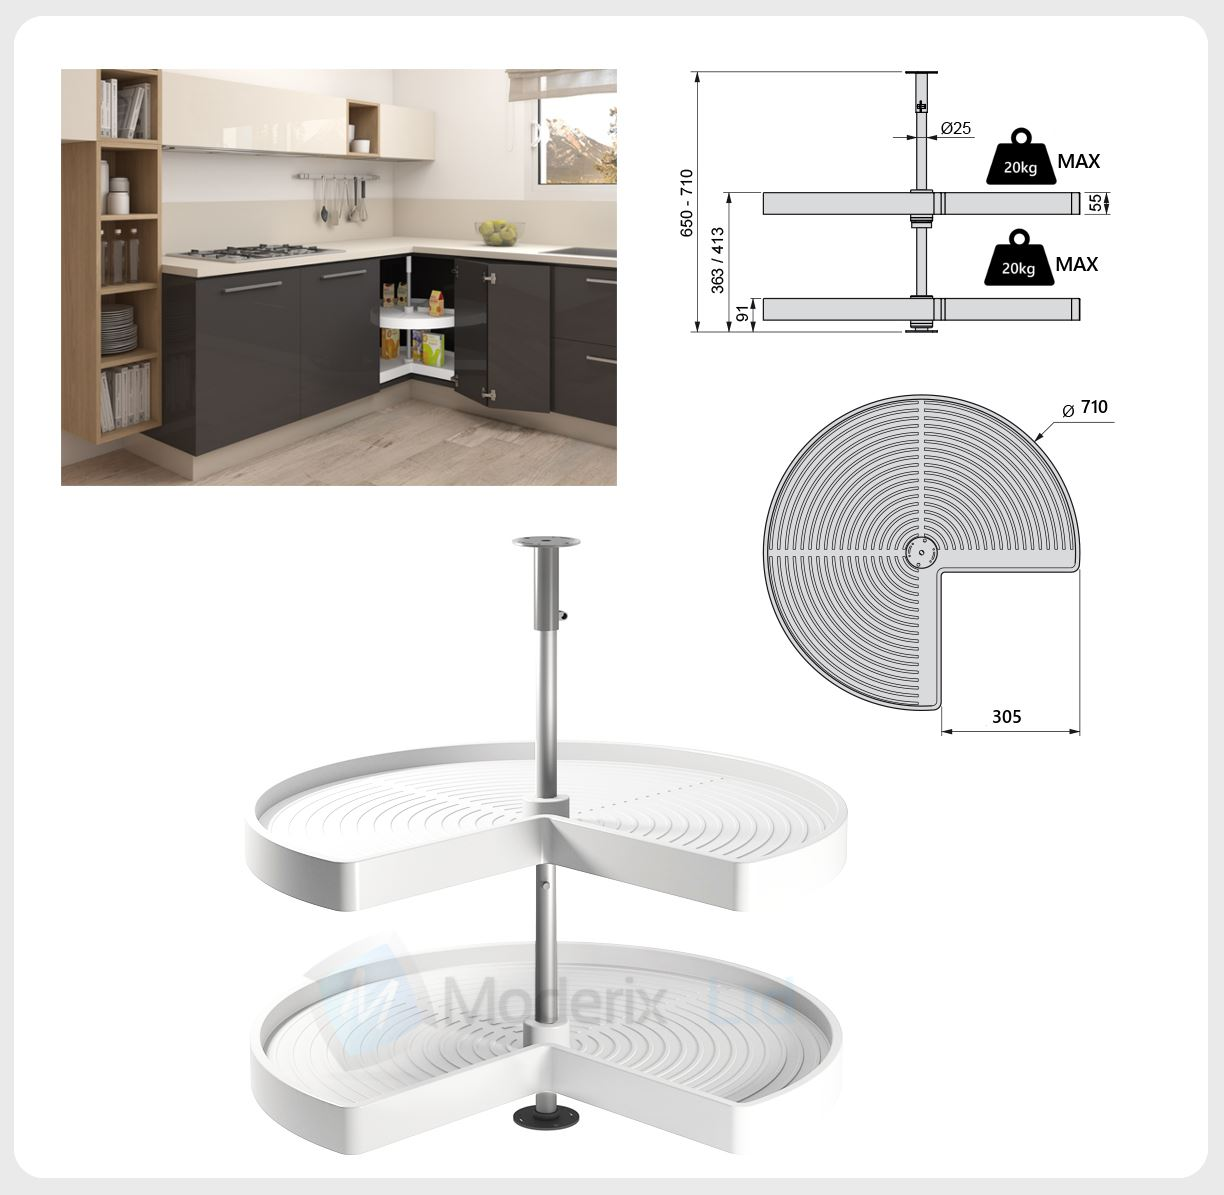 KITCHEN CORNER UNIT CAROUSEL CIRCLE 3 4 SET